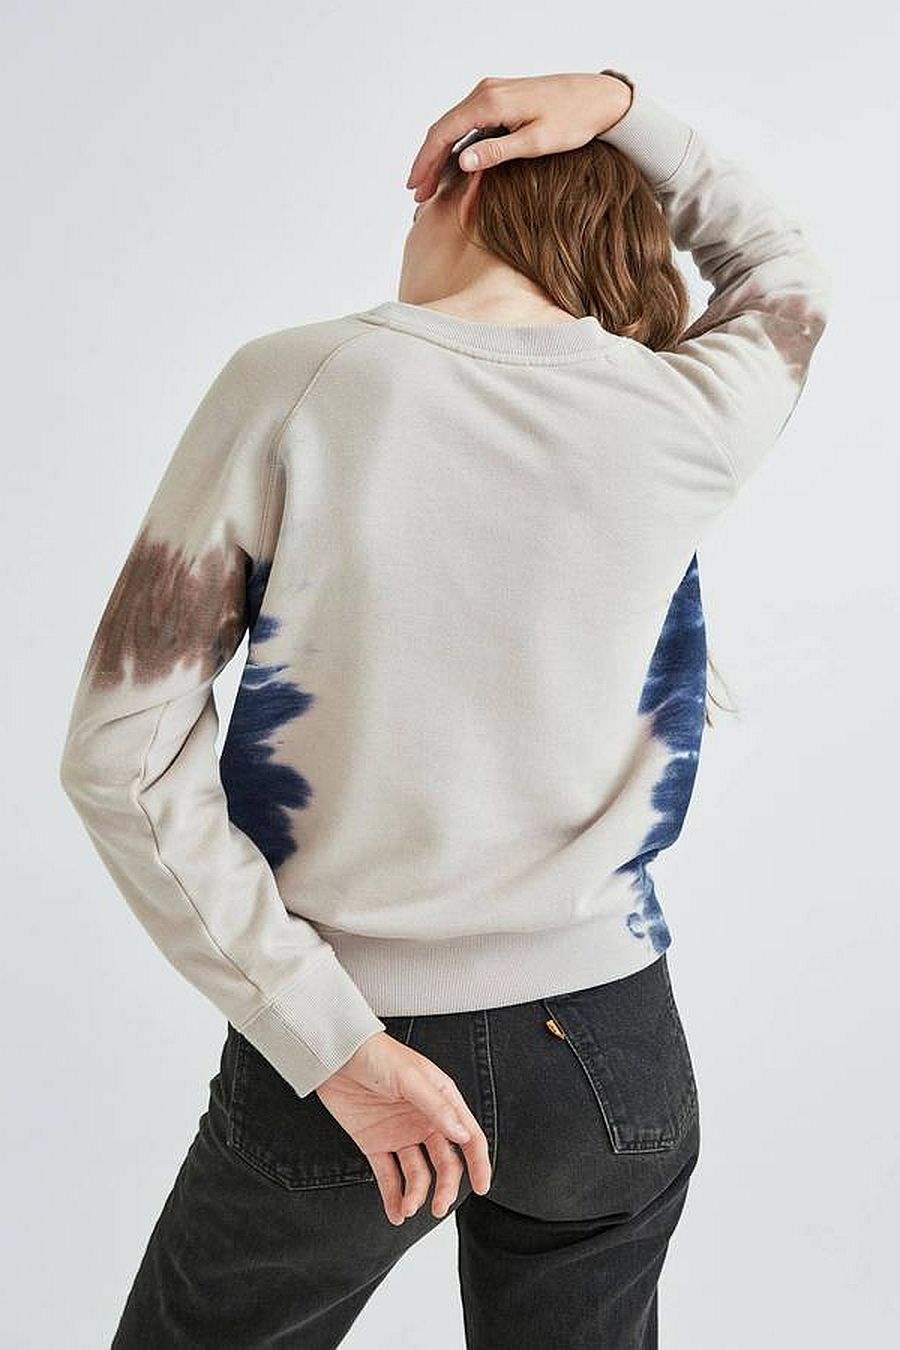 Richer Poorer Fleece Sweatshirt - Tie Dye